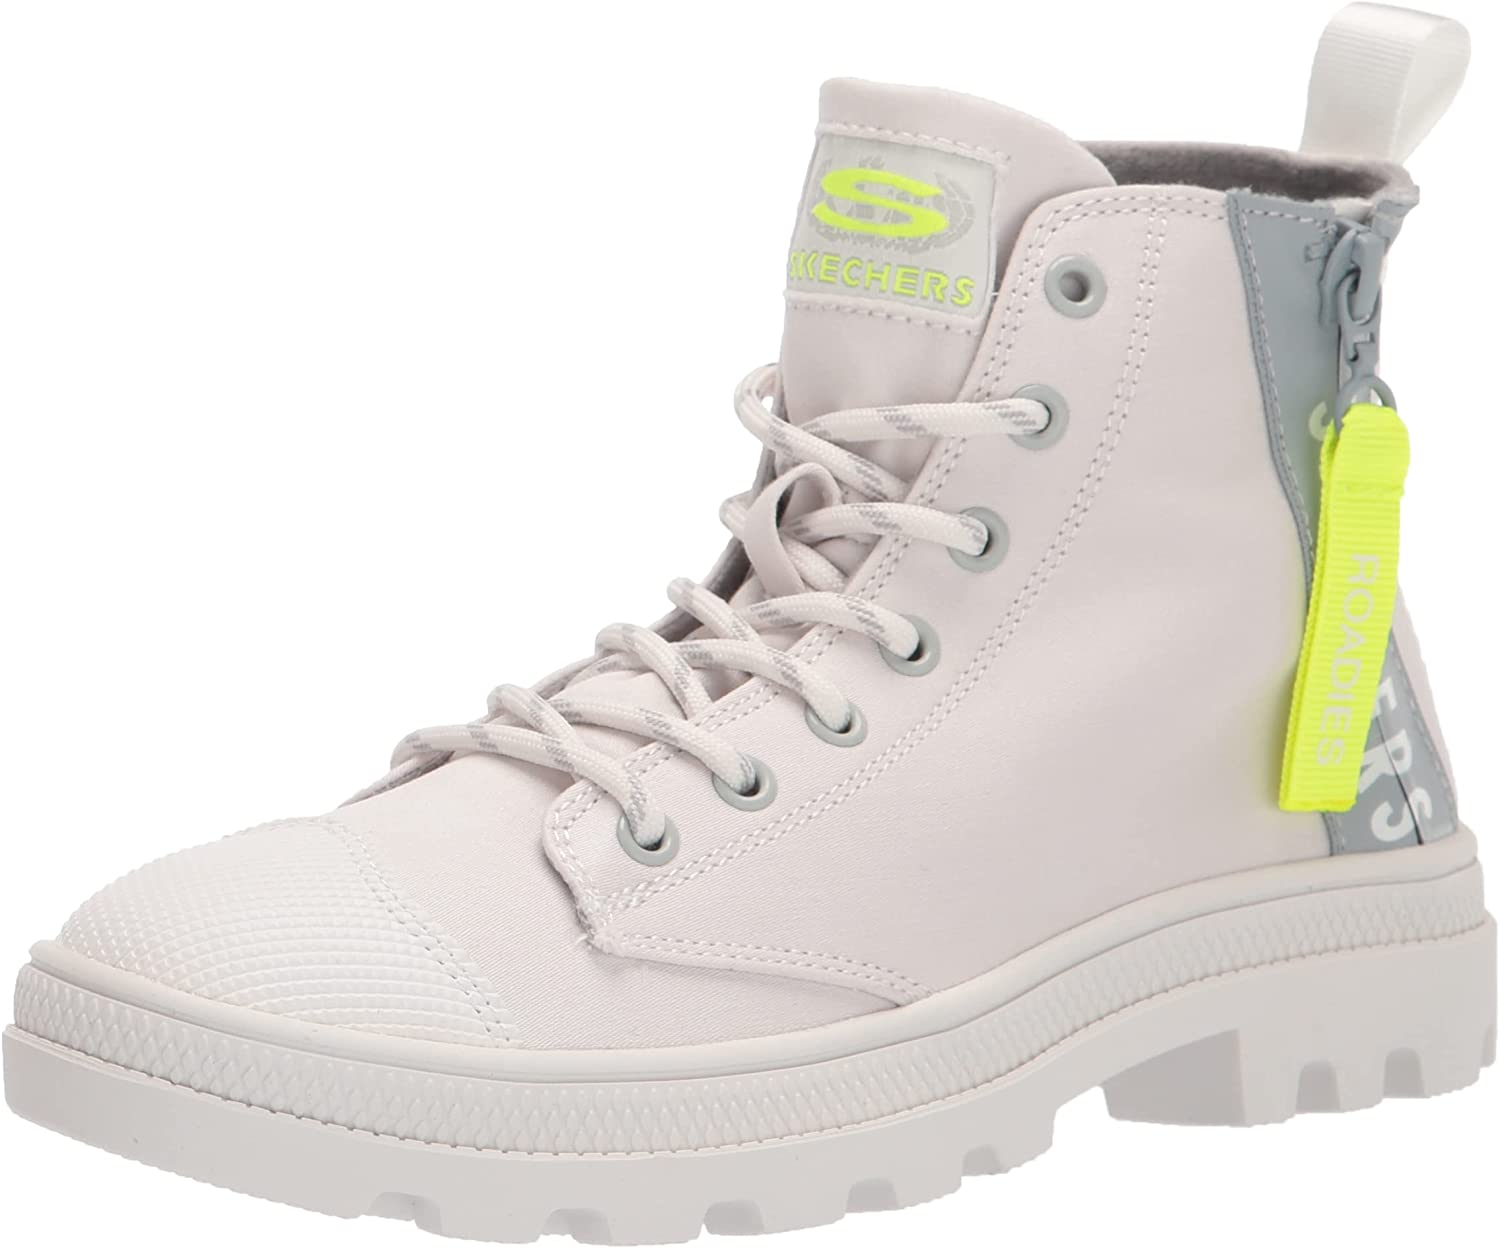 Skechers Women's Roadies-Miss Fashion Cheap SALE Start Military Indianapolis Mall Boot